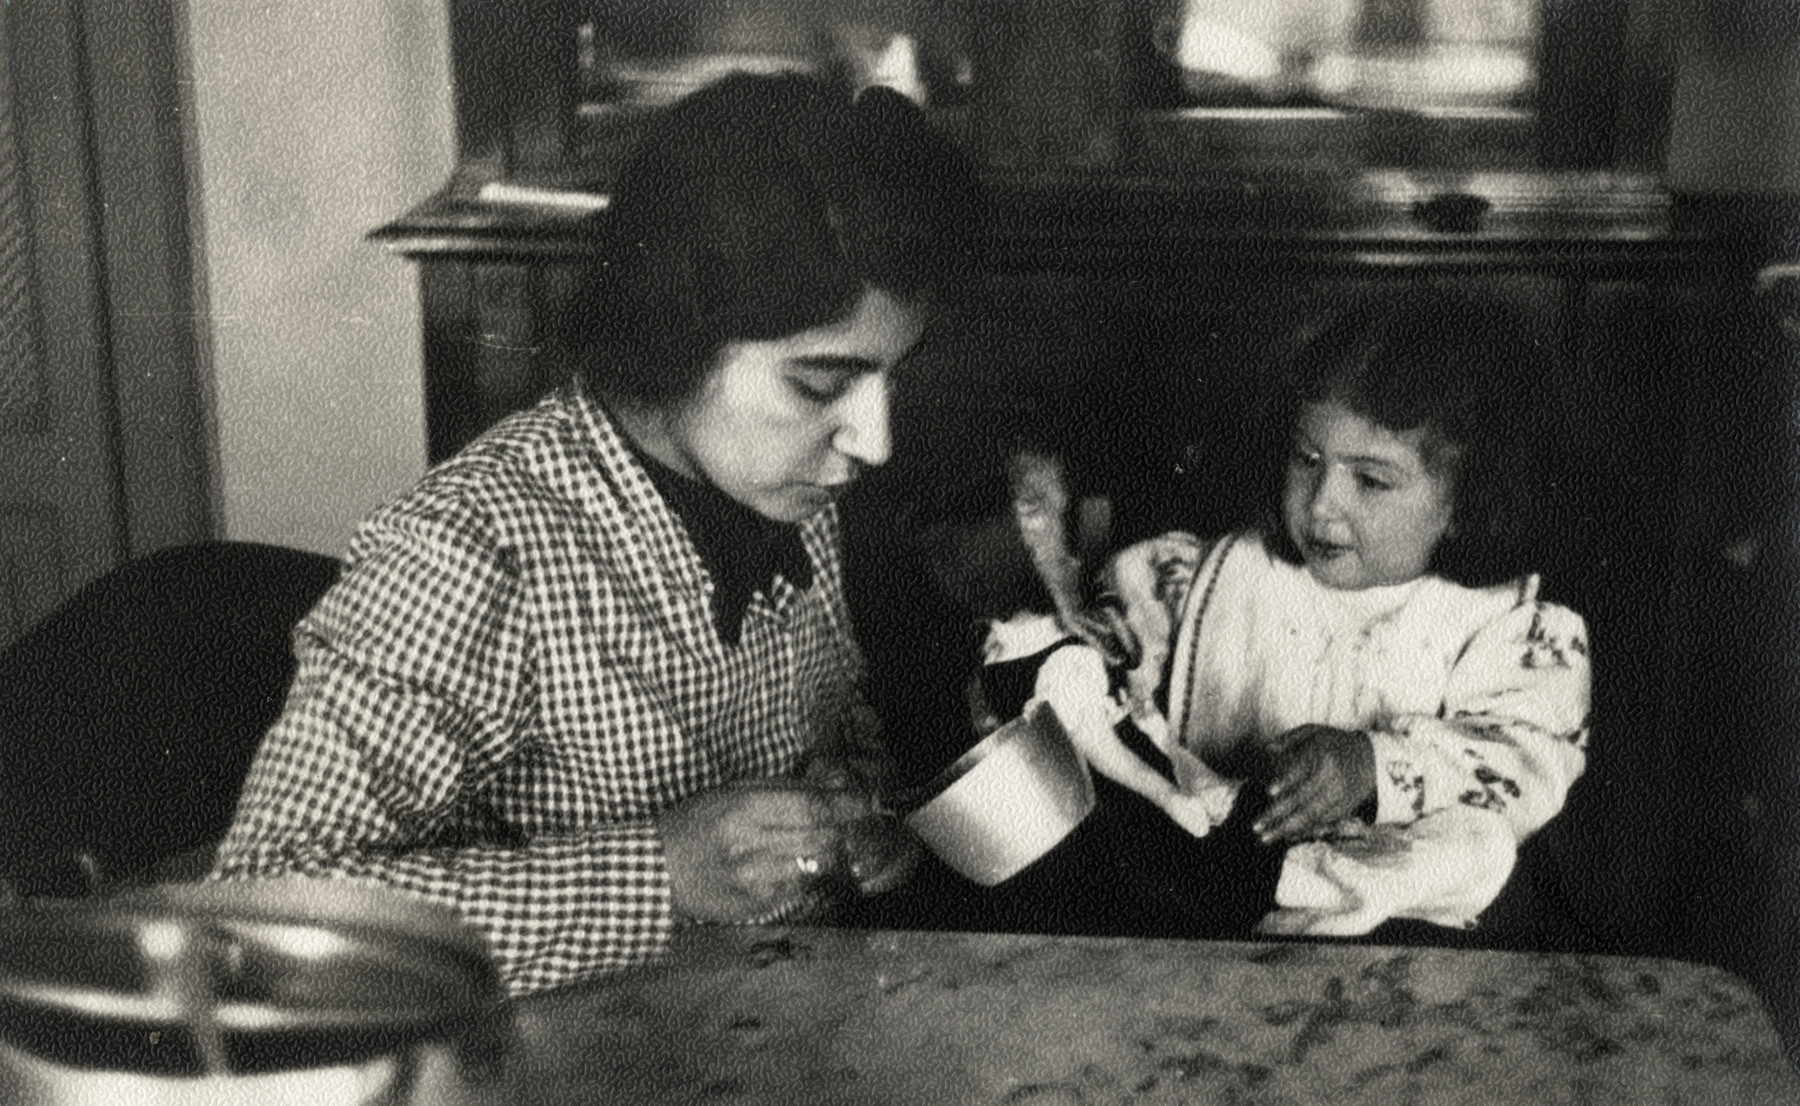 Ada Nissim sits with her young daughter Leah in their kitchen in Trieste.